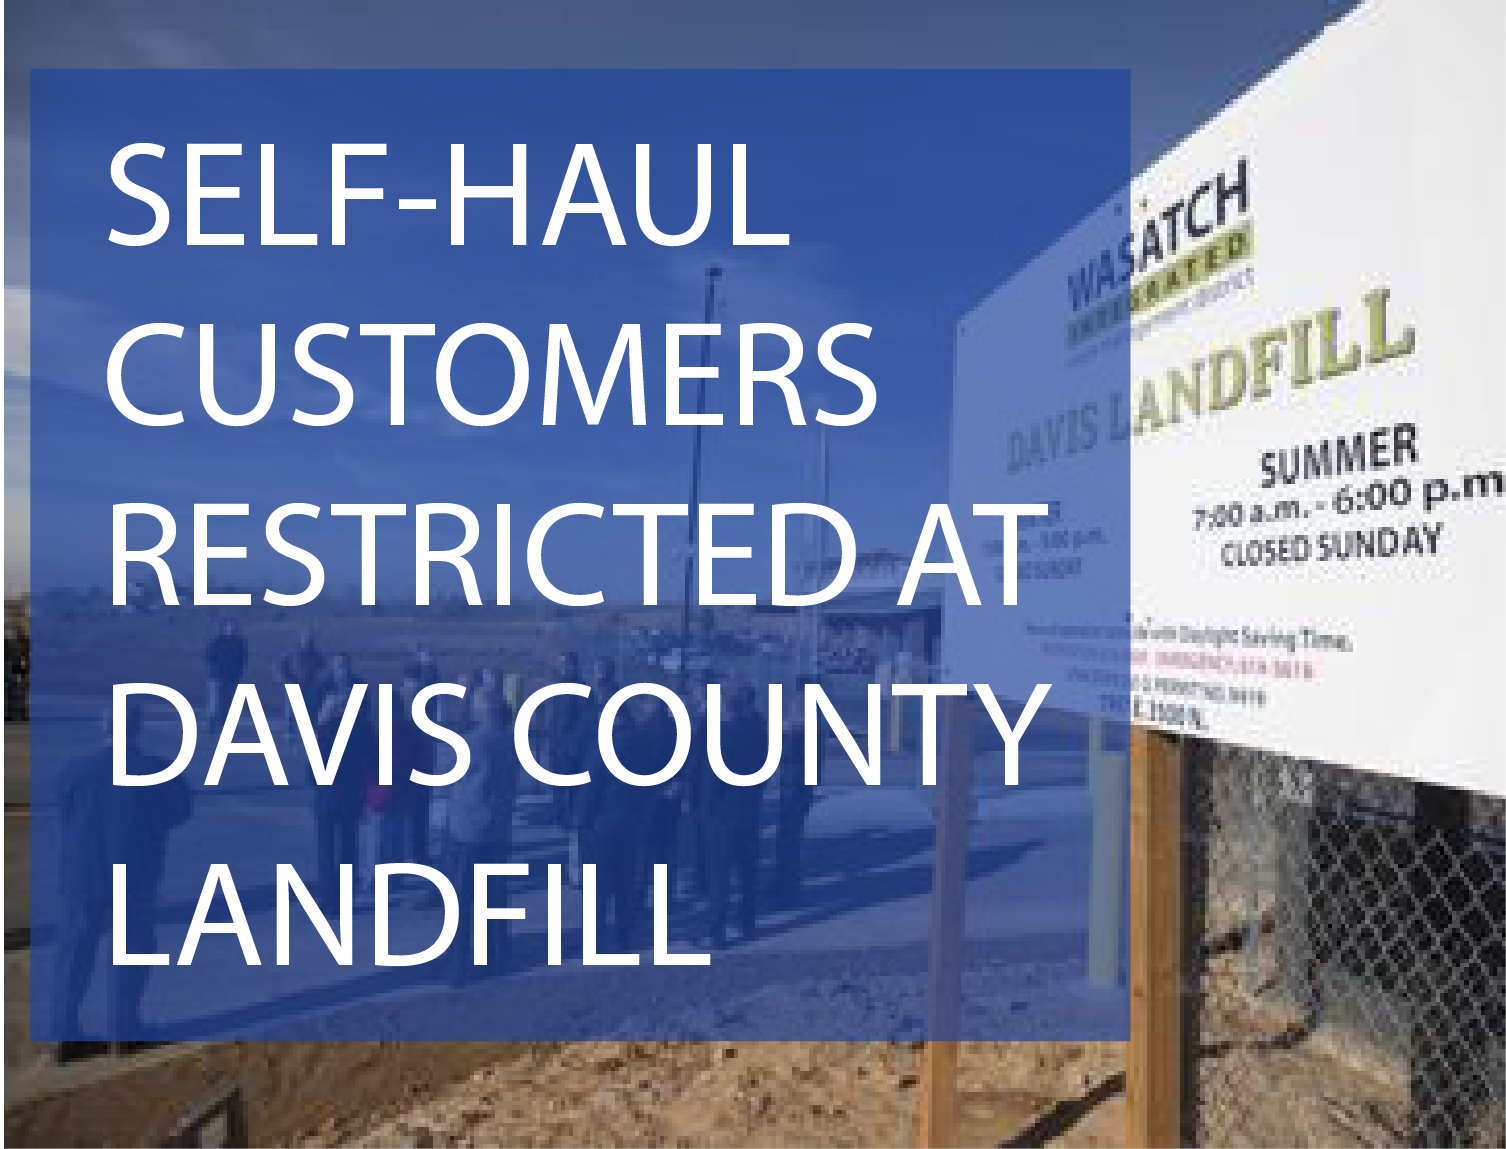 wasatch davis landfill CLOSED TO self haul